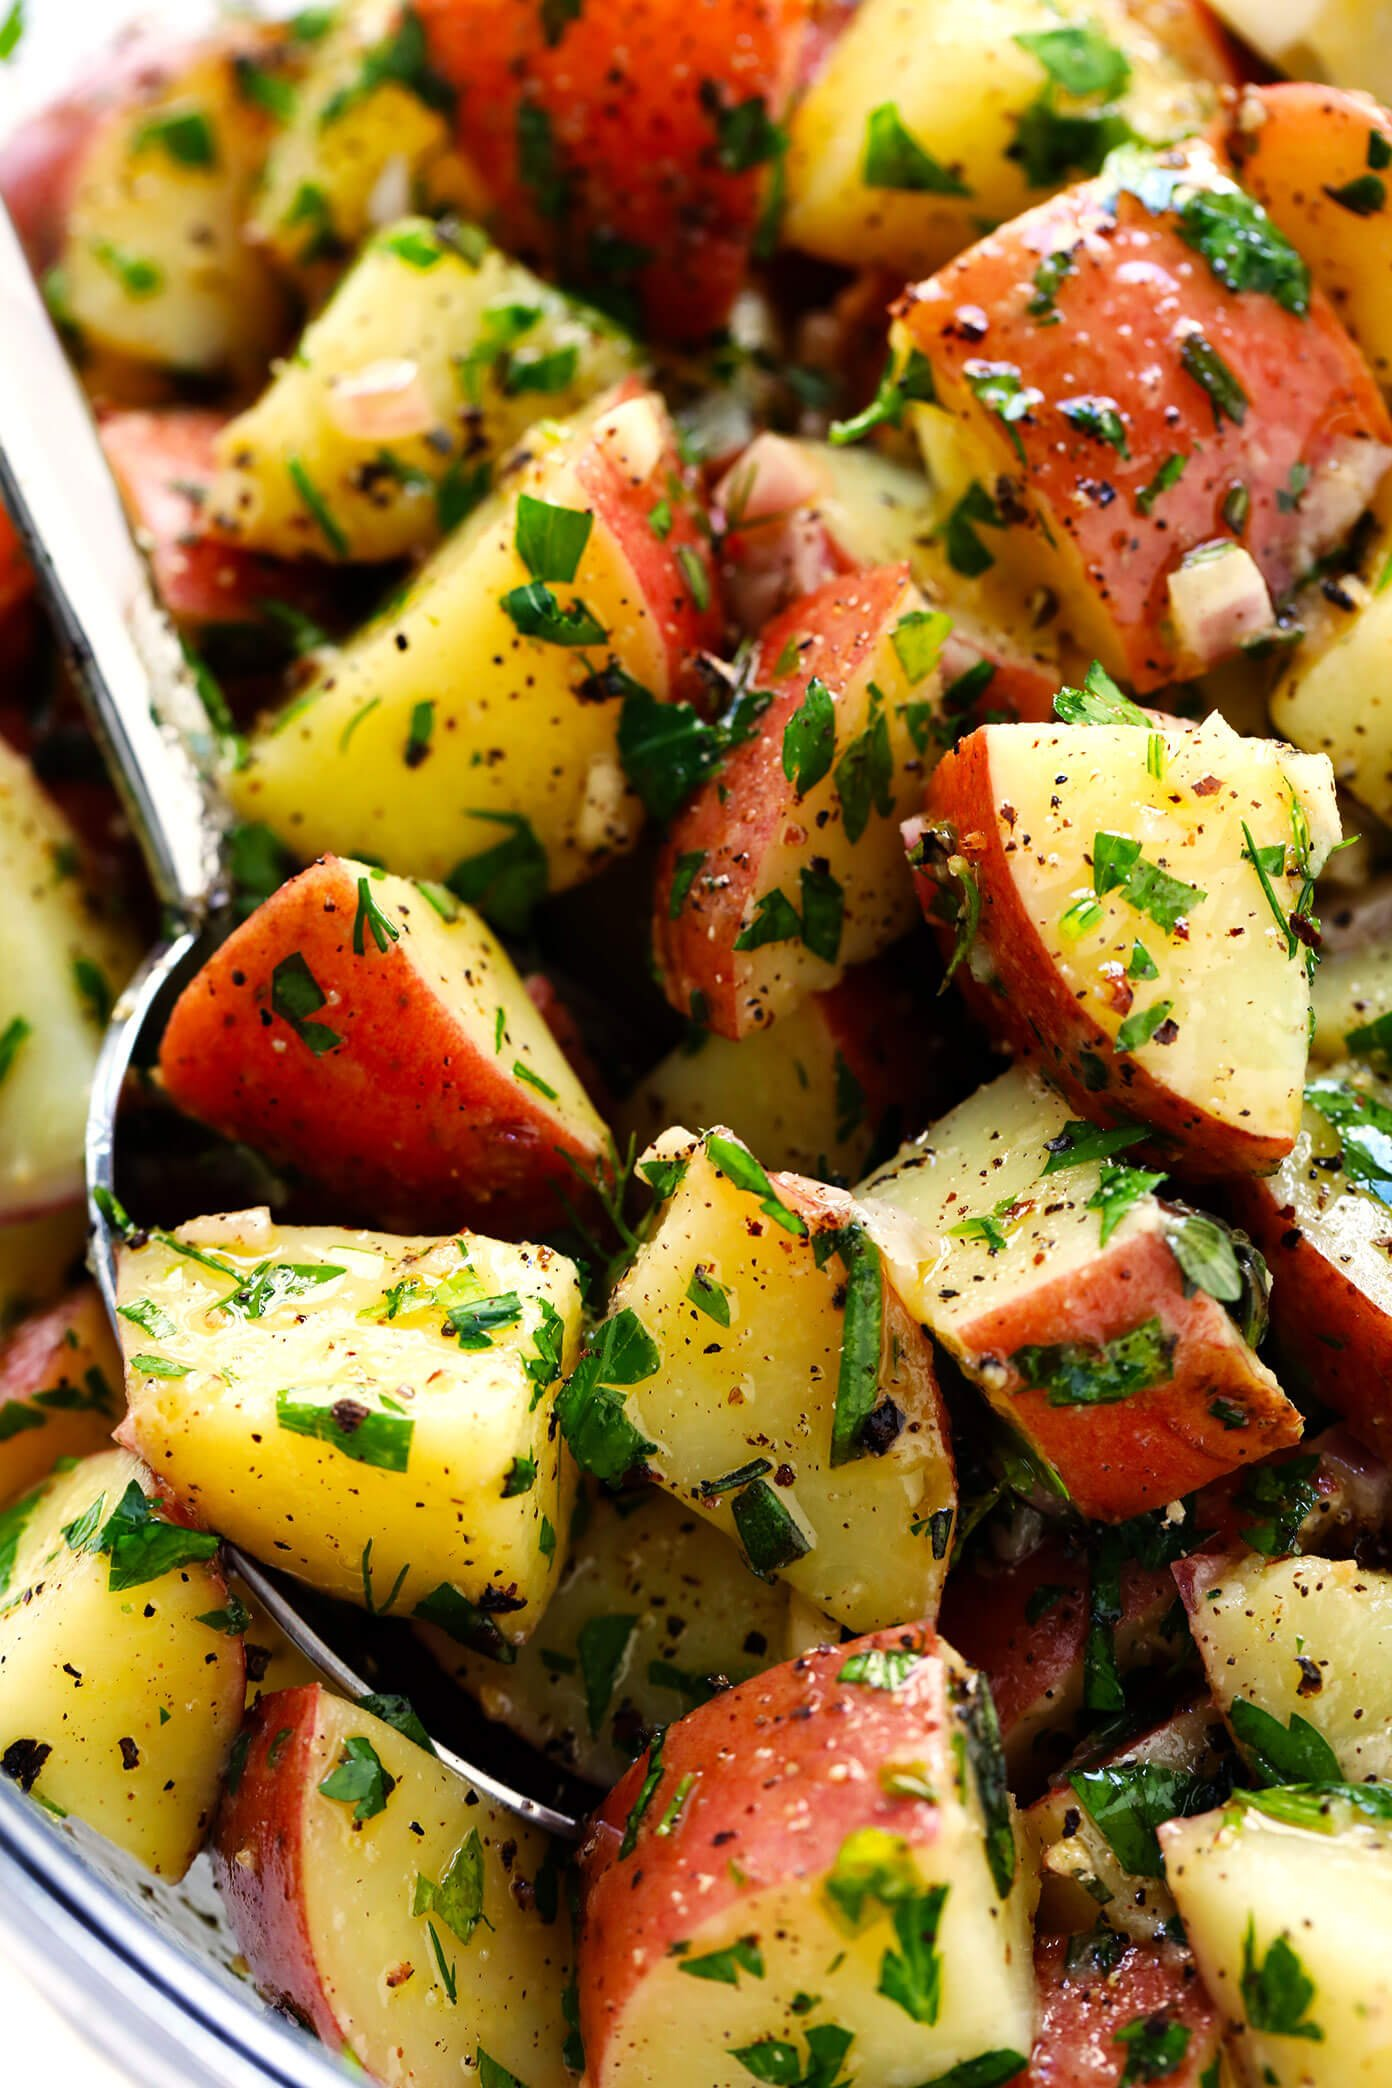 Lemon Herb Potato Salad Recipe (No Mayo)